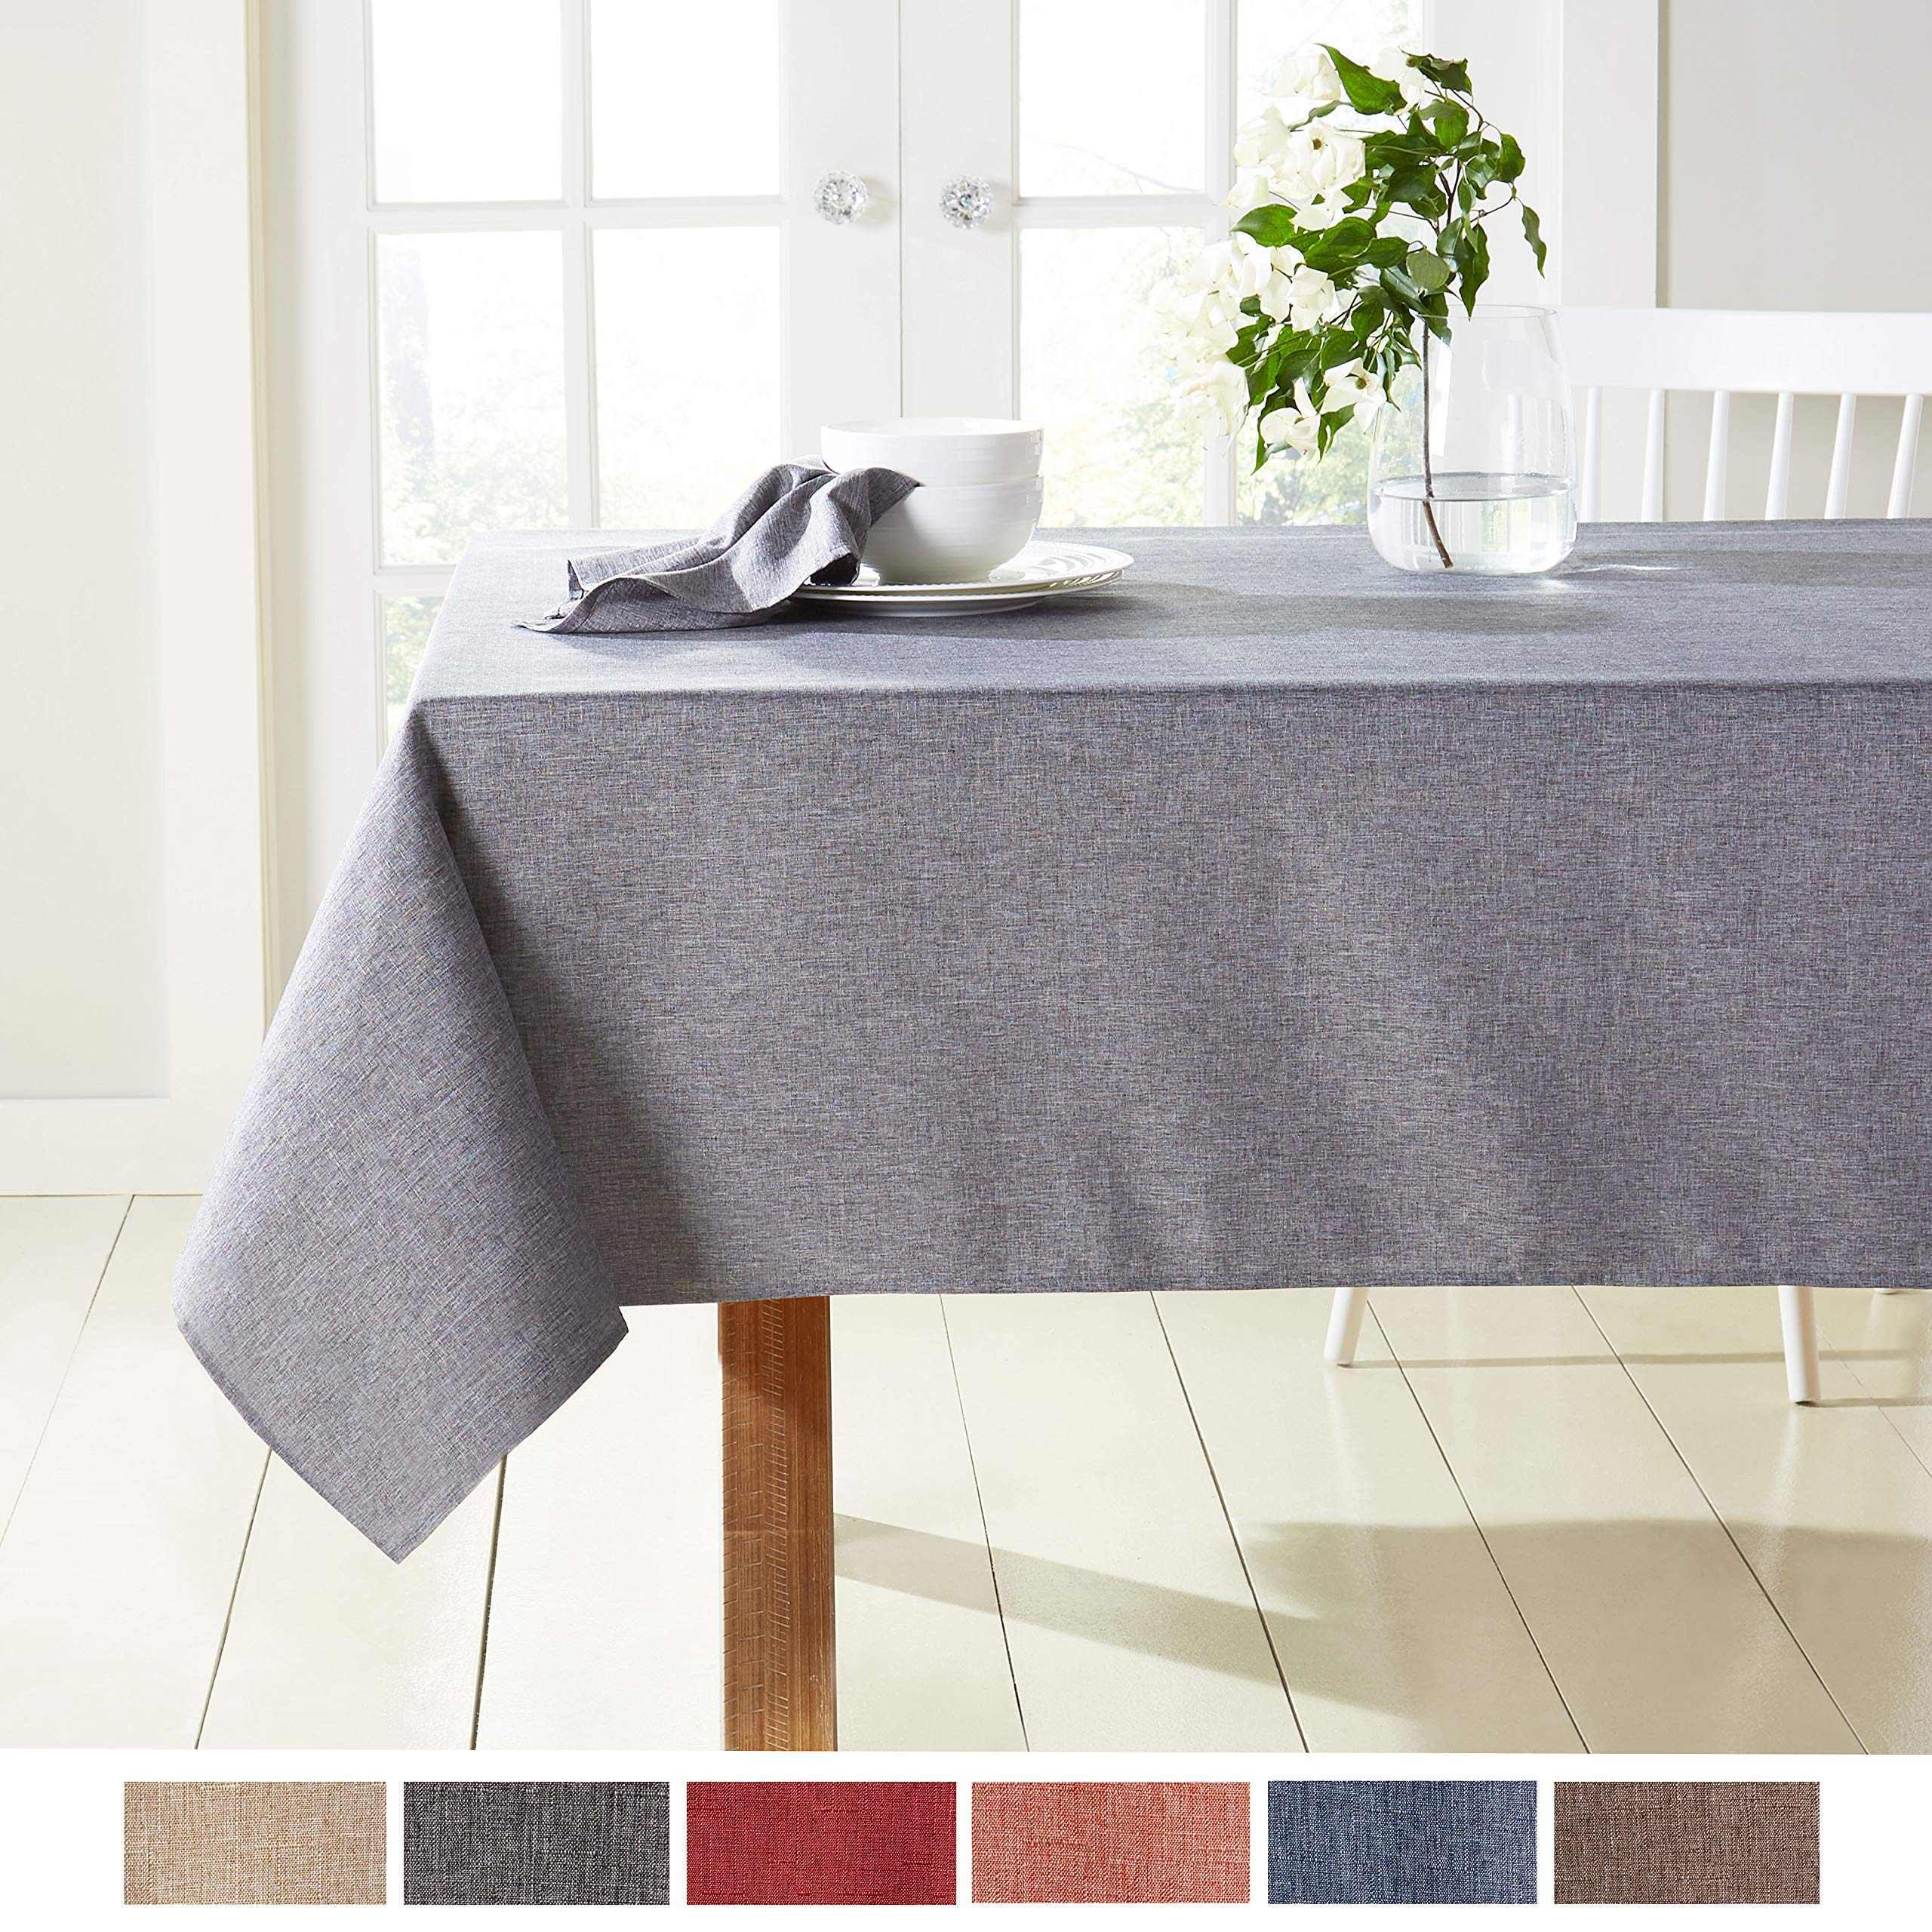 Town Country Living Somers Modern Farmhouse Tablecloth Picnic Indoor Outdoor Stain Resistant Machine Washable Polyester 60 X144 Rectangle Brown